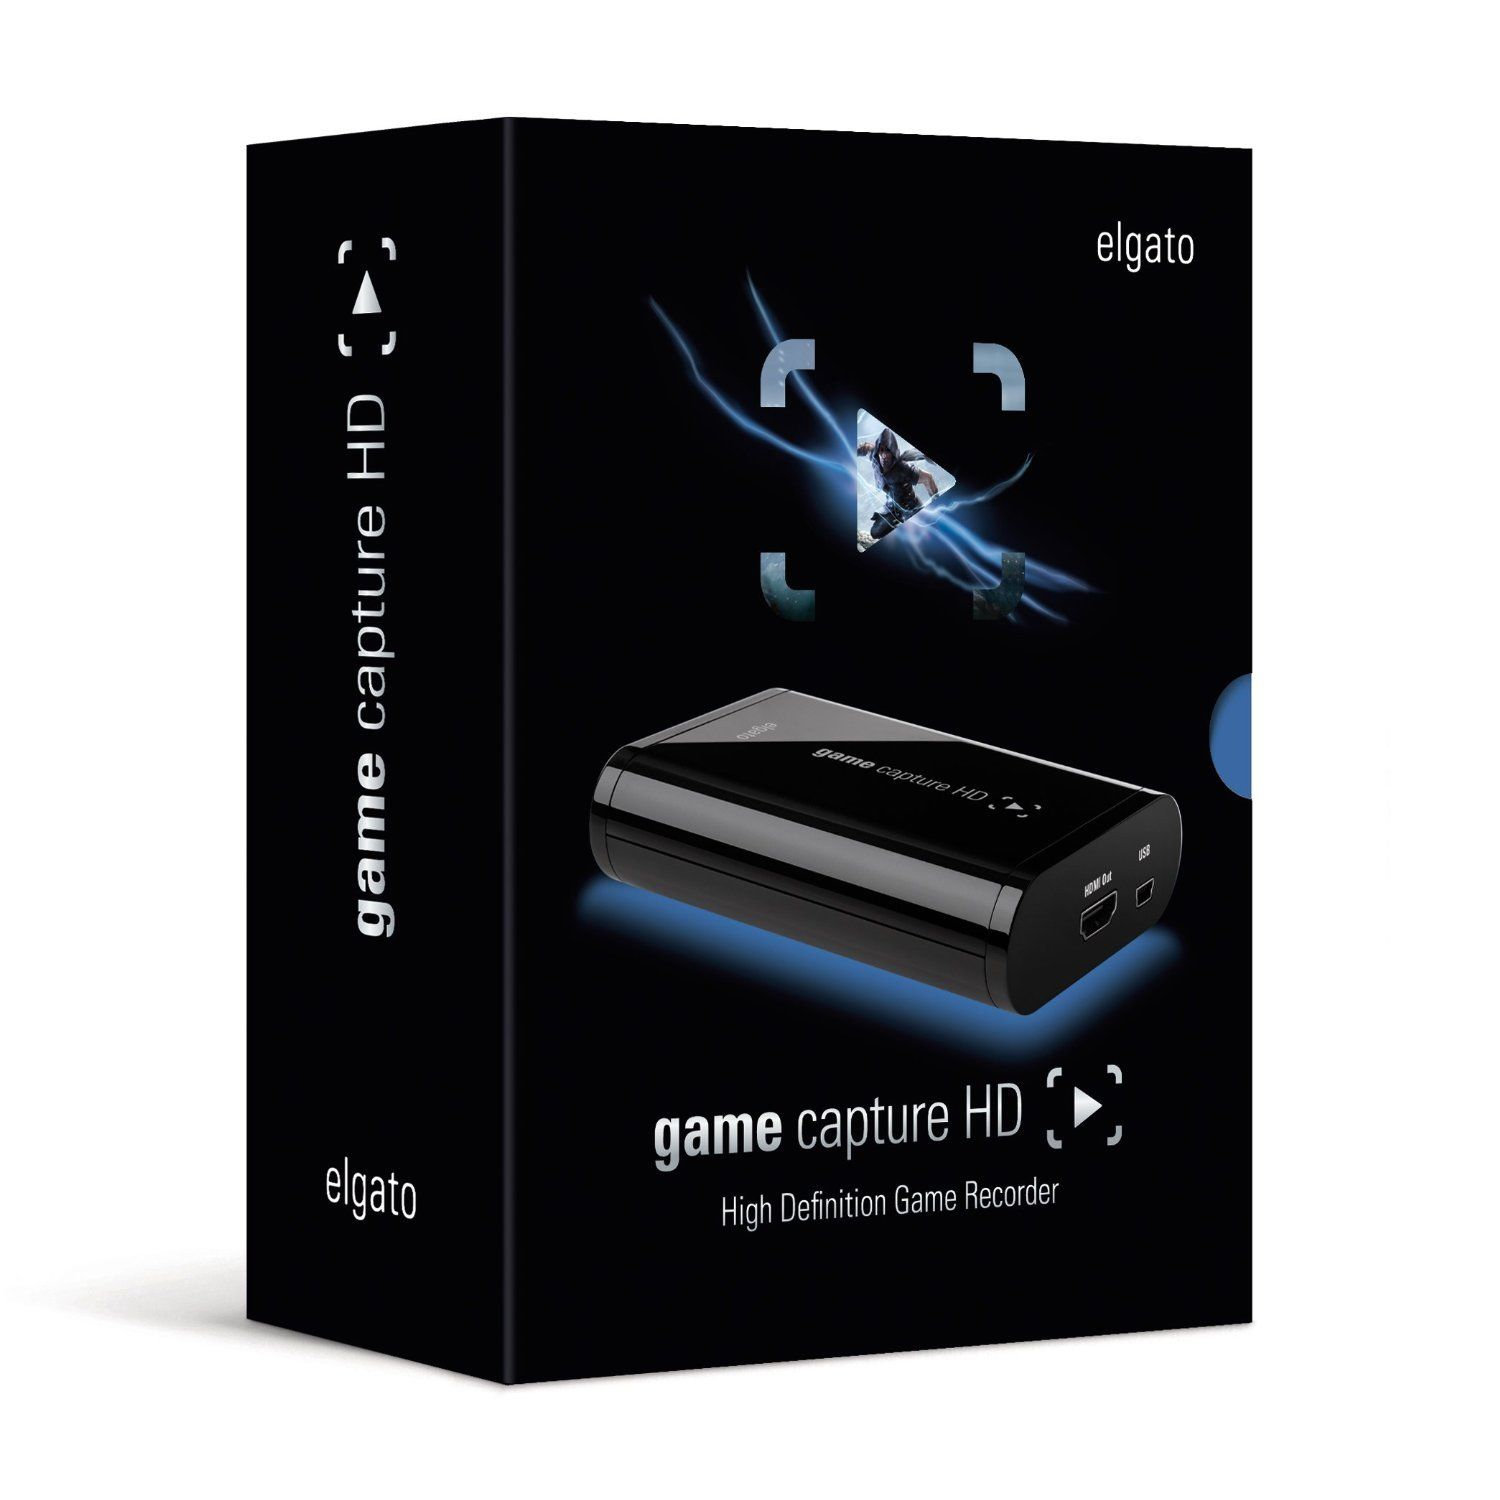 Certified Refurbished Elgato Game Capture HD Xbox 360/One Playstation PS3/PS4 Recorder MAC/PC